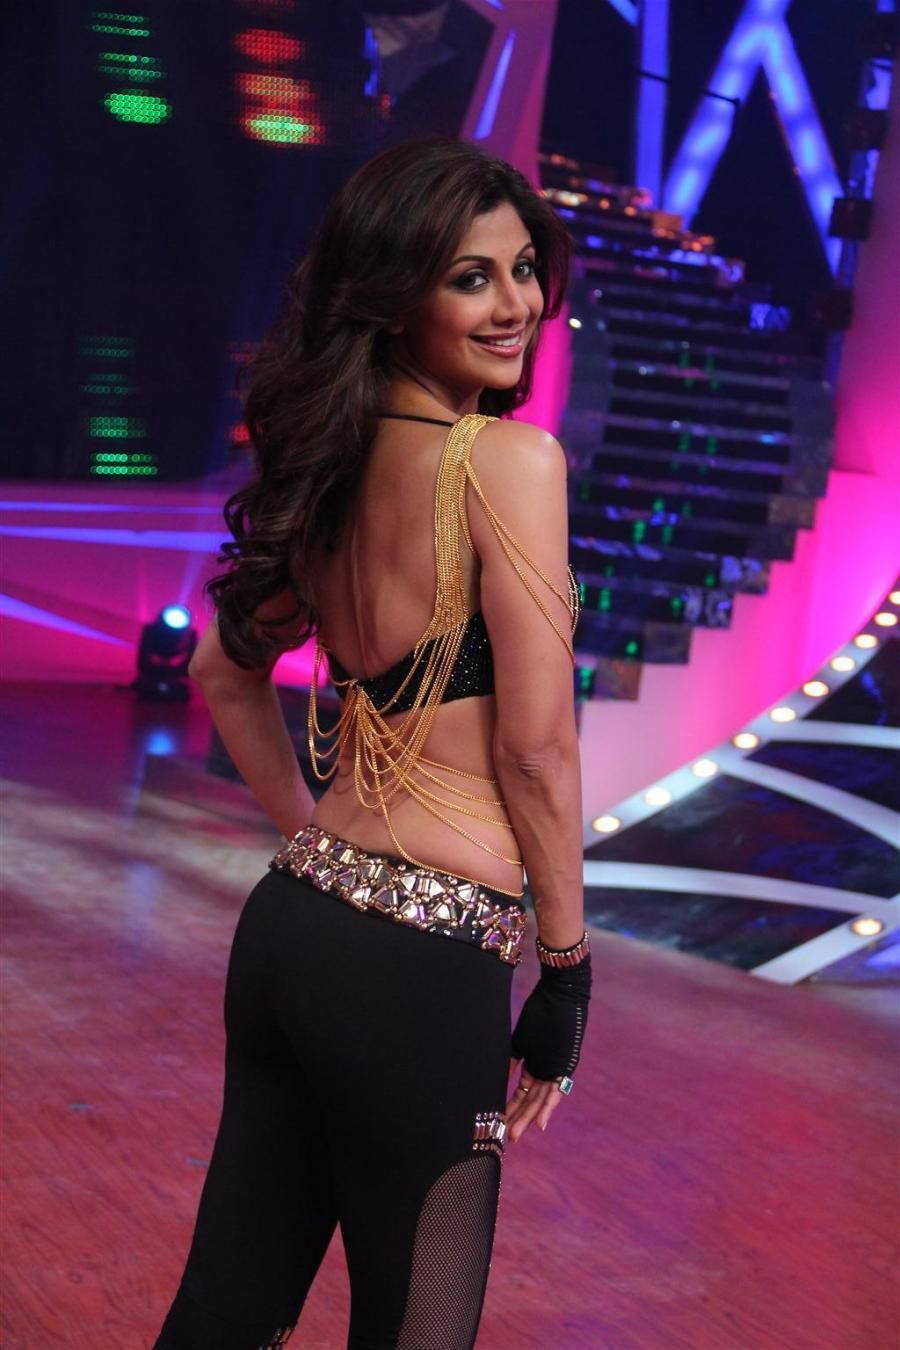 Shilpa Shetty Hot And Sexy Yoga Pics Collection With Very Seducing Erotic Boobs Navel And Booty Show With Oops Moment And Bikni Pics Shil